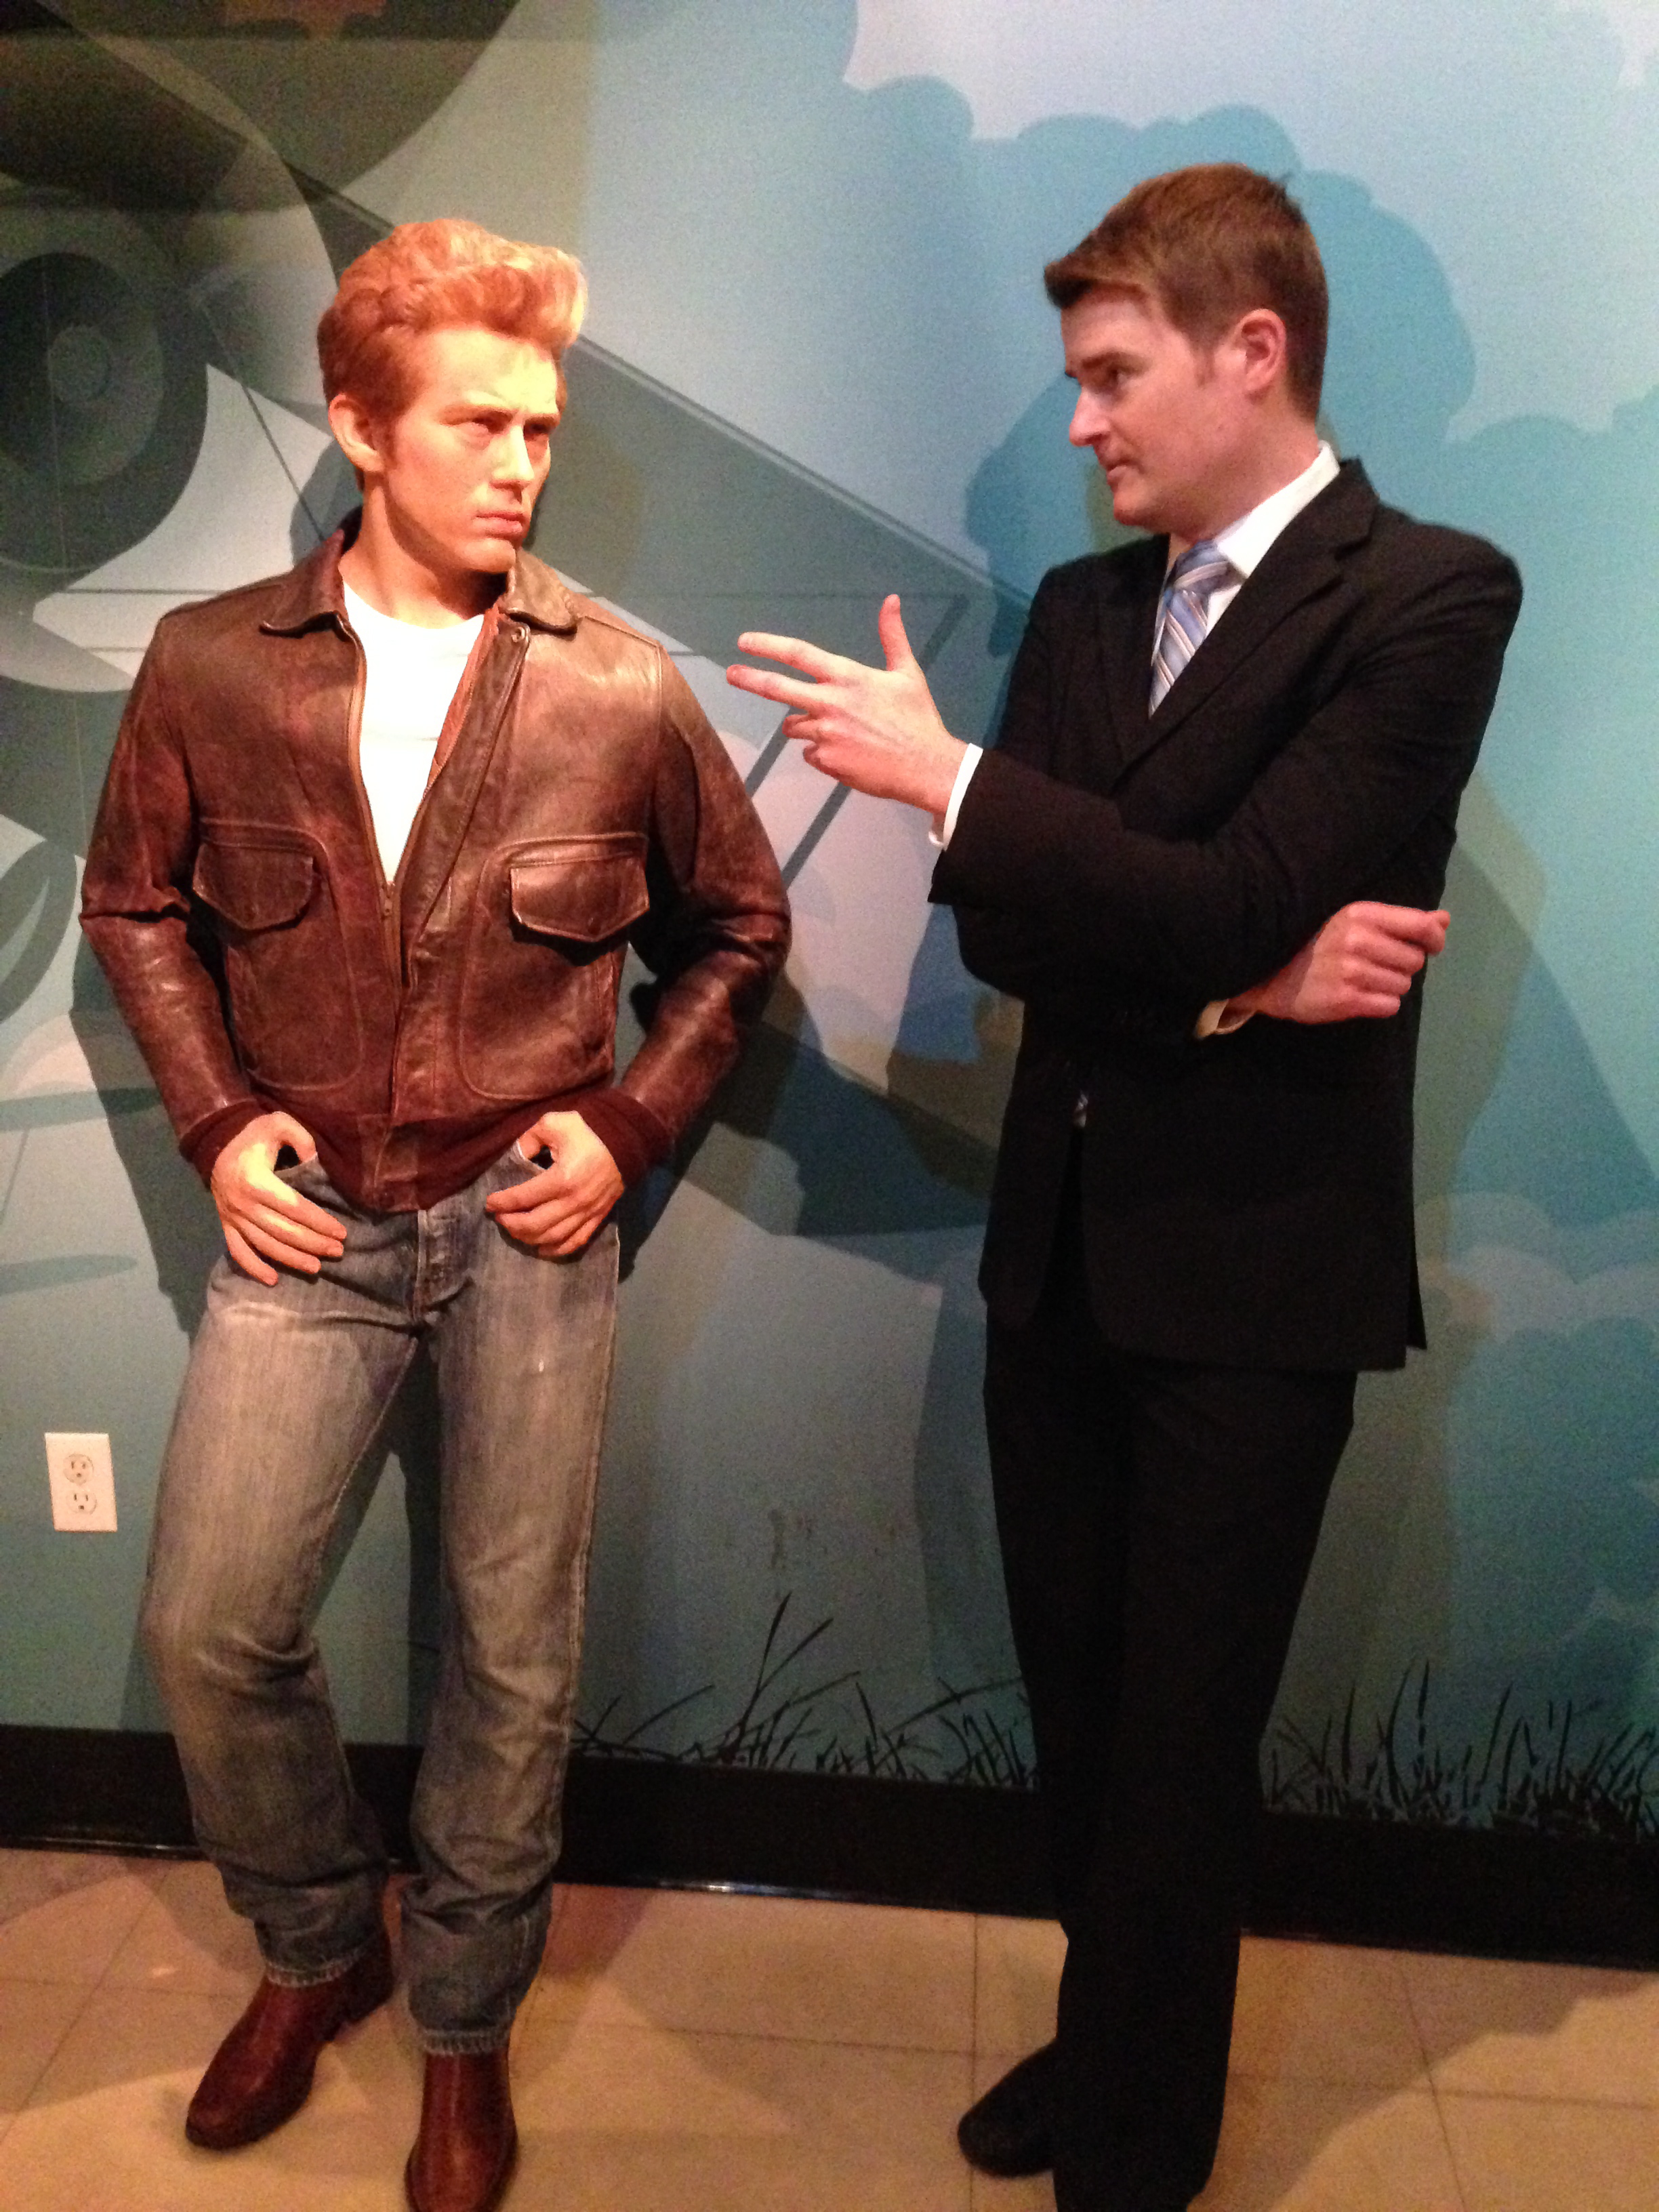 He was skeptical at first, but I eventually won Canadian icon James Dean over with my 3-point plan for Senate transparency.